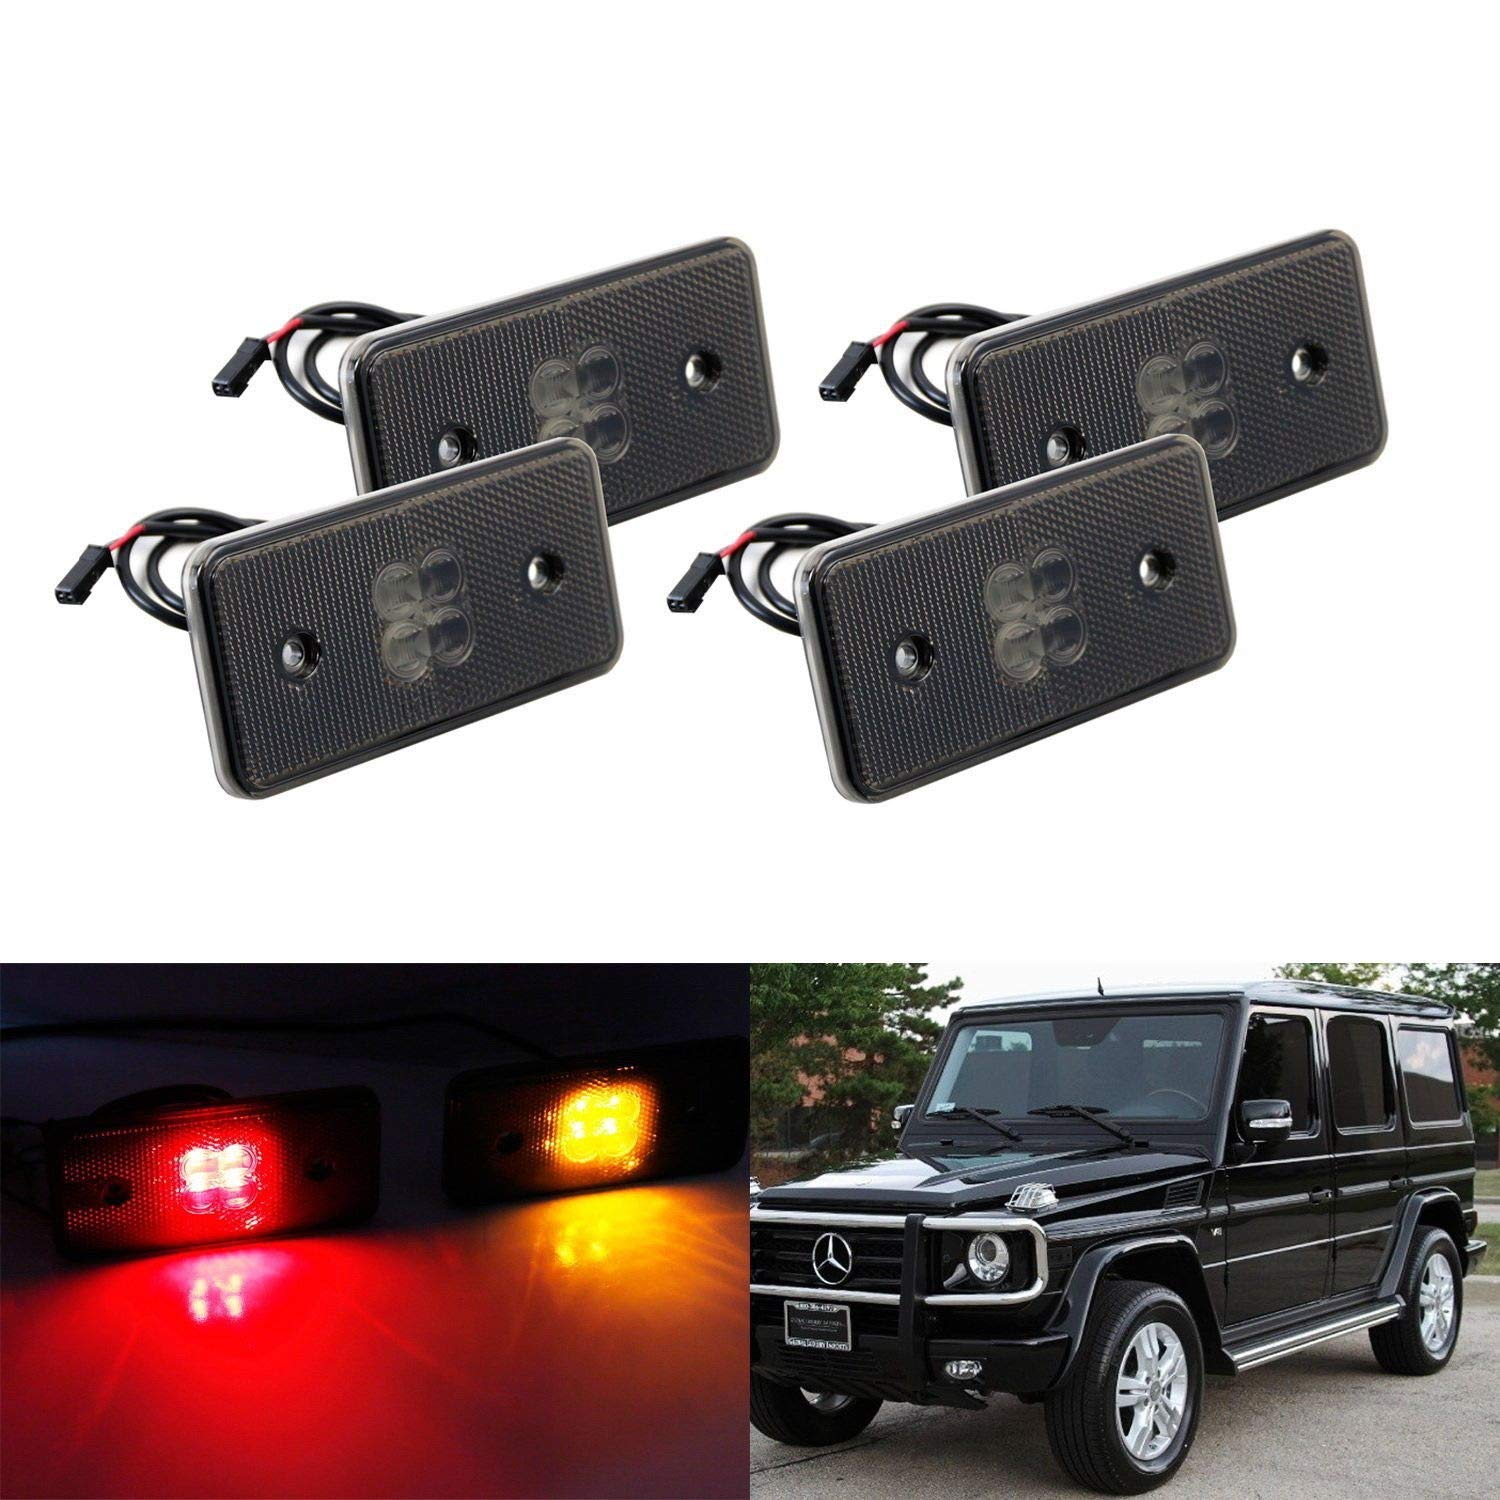 iJDMTOY Smoked Lens Amber/Red Full LED Side Marker Light Kit For 2002-14 Mercedes W463 G-Class G500 G550 G55 G63 AMG, Replace Front/Back OEM Sidemarker Lamps iJDMTOY Auto Accessories Change Left/Right Original Lamp Assembly